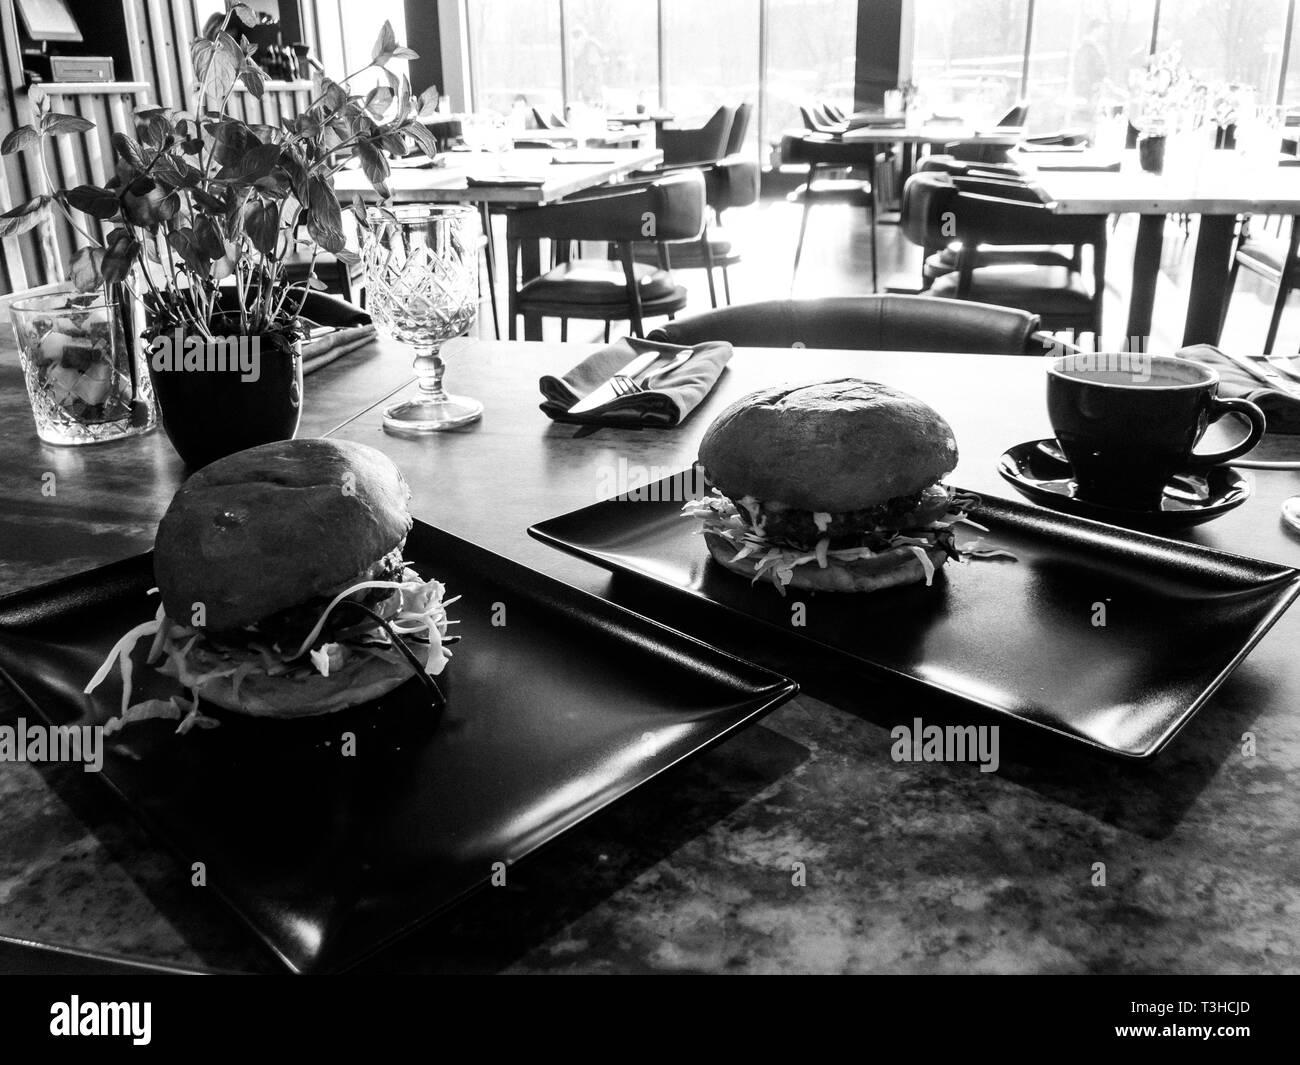 Tasty huge burgers in a restaurant cafe - Stock Image